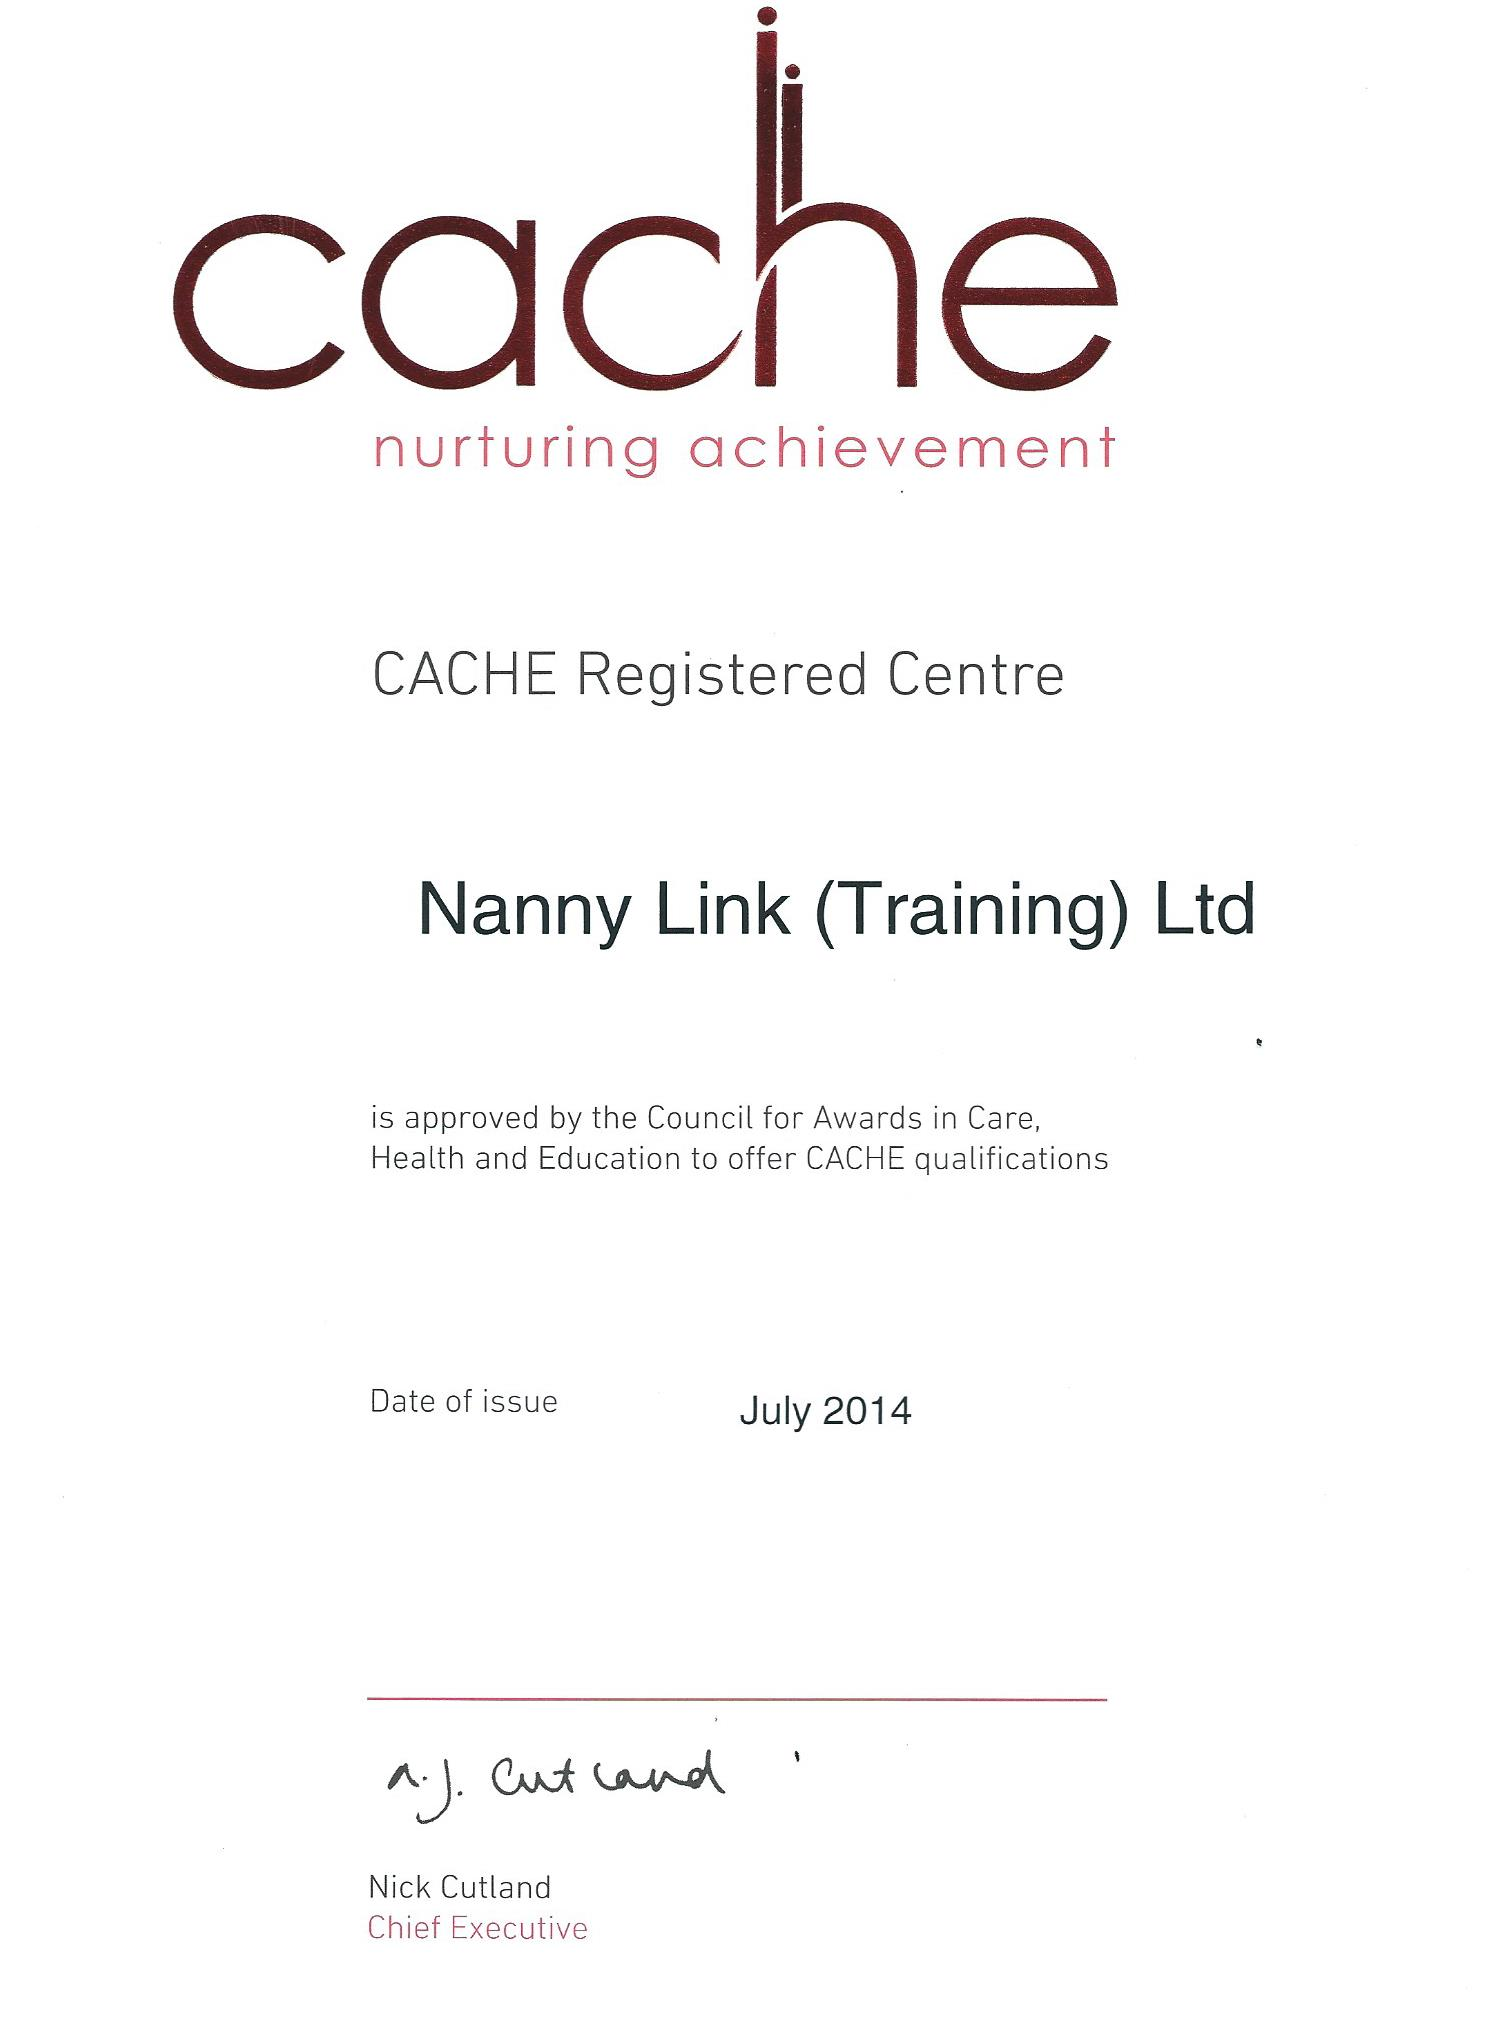 Professional nanny training course nannytraininglink cache certificate 1betcityfo Image collections